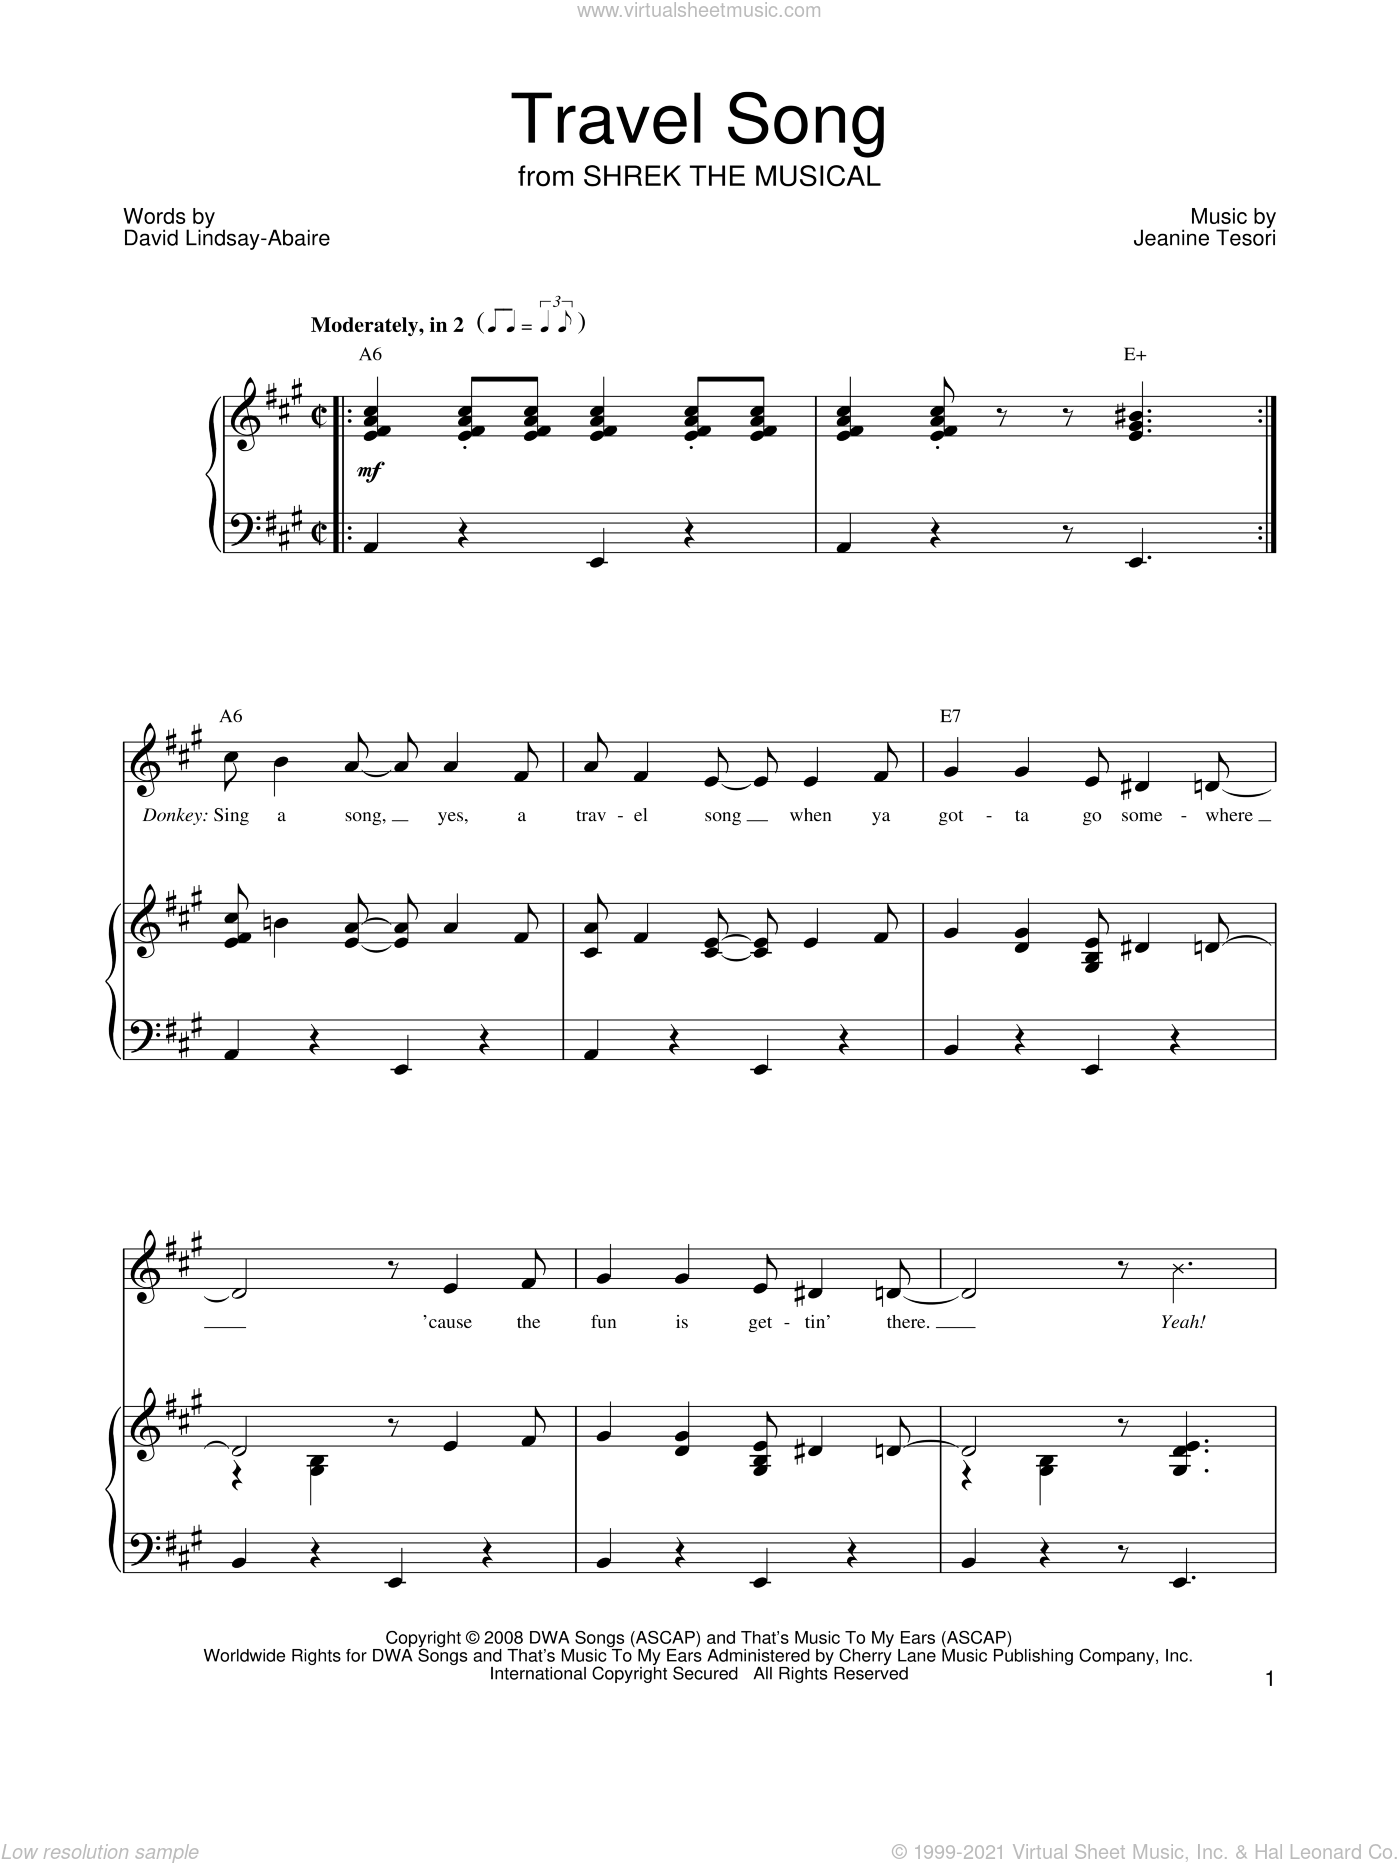 Travel Song sheet music for voice, piano or guitar by Jeanine Tesori